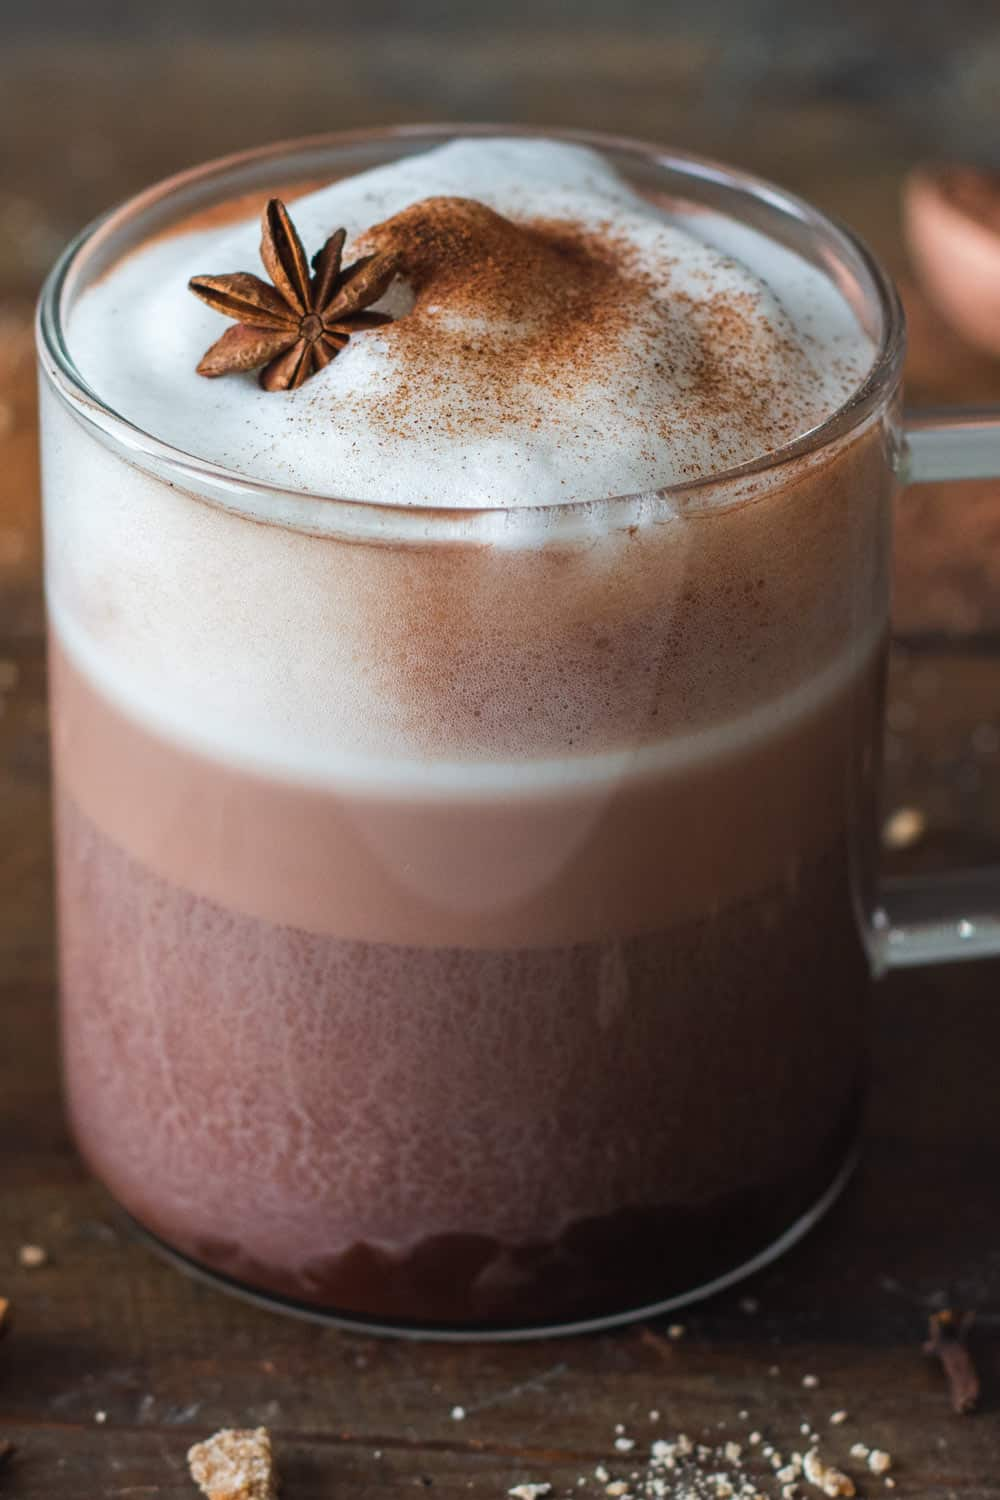 Mexican Hot Chocolate with frothed milk in a glass cup